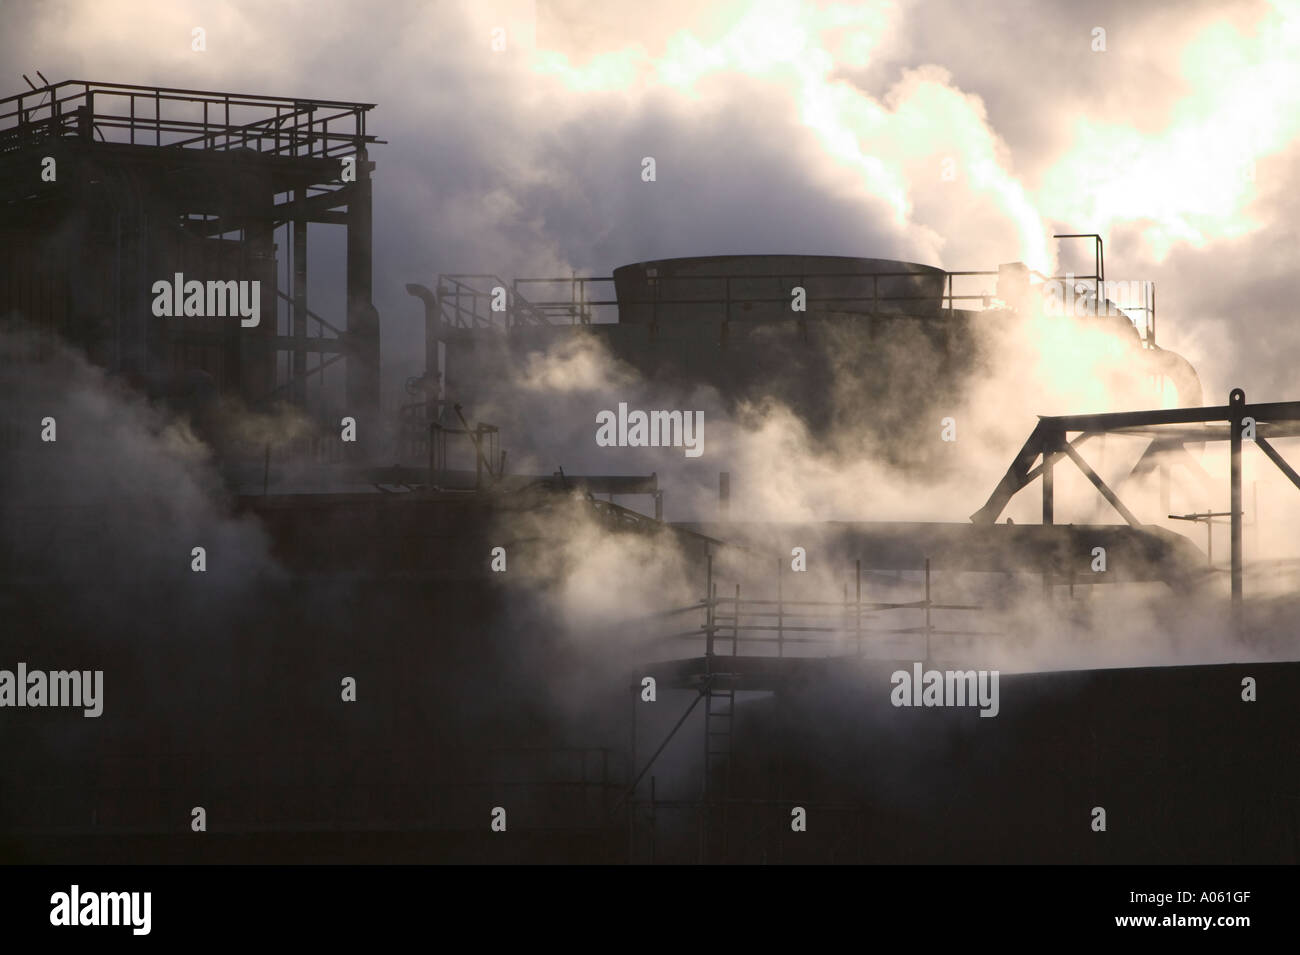 Emmissions from the Corus steel works, Teeside, England - Stock Image